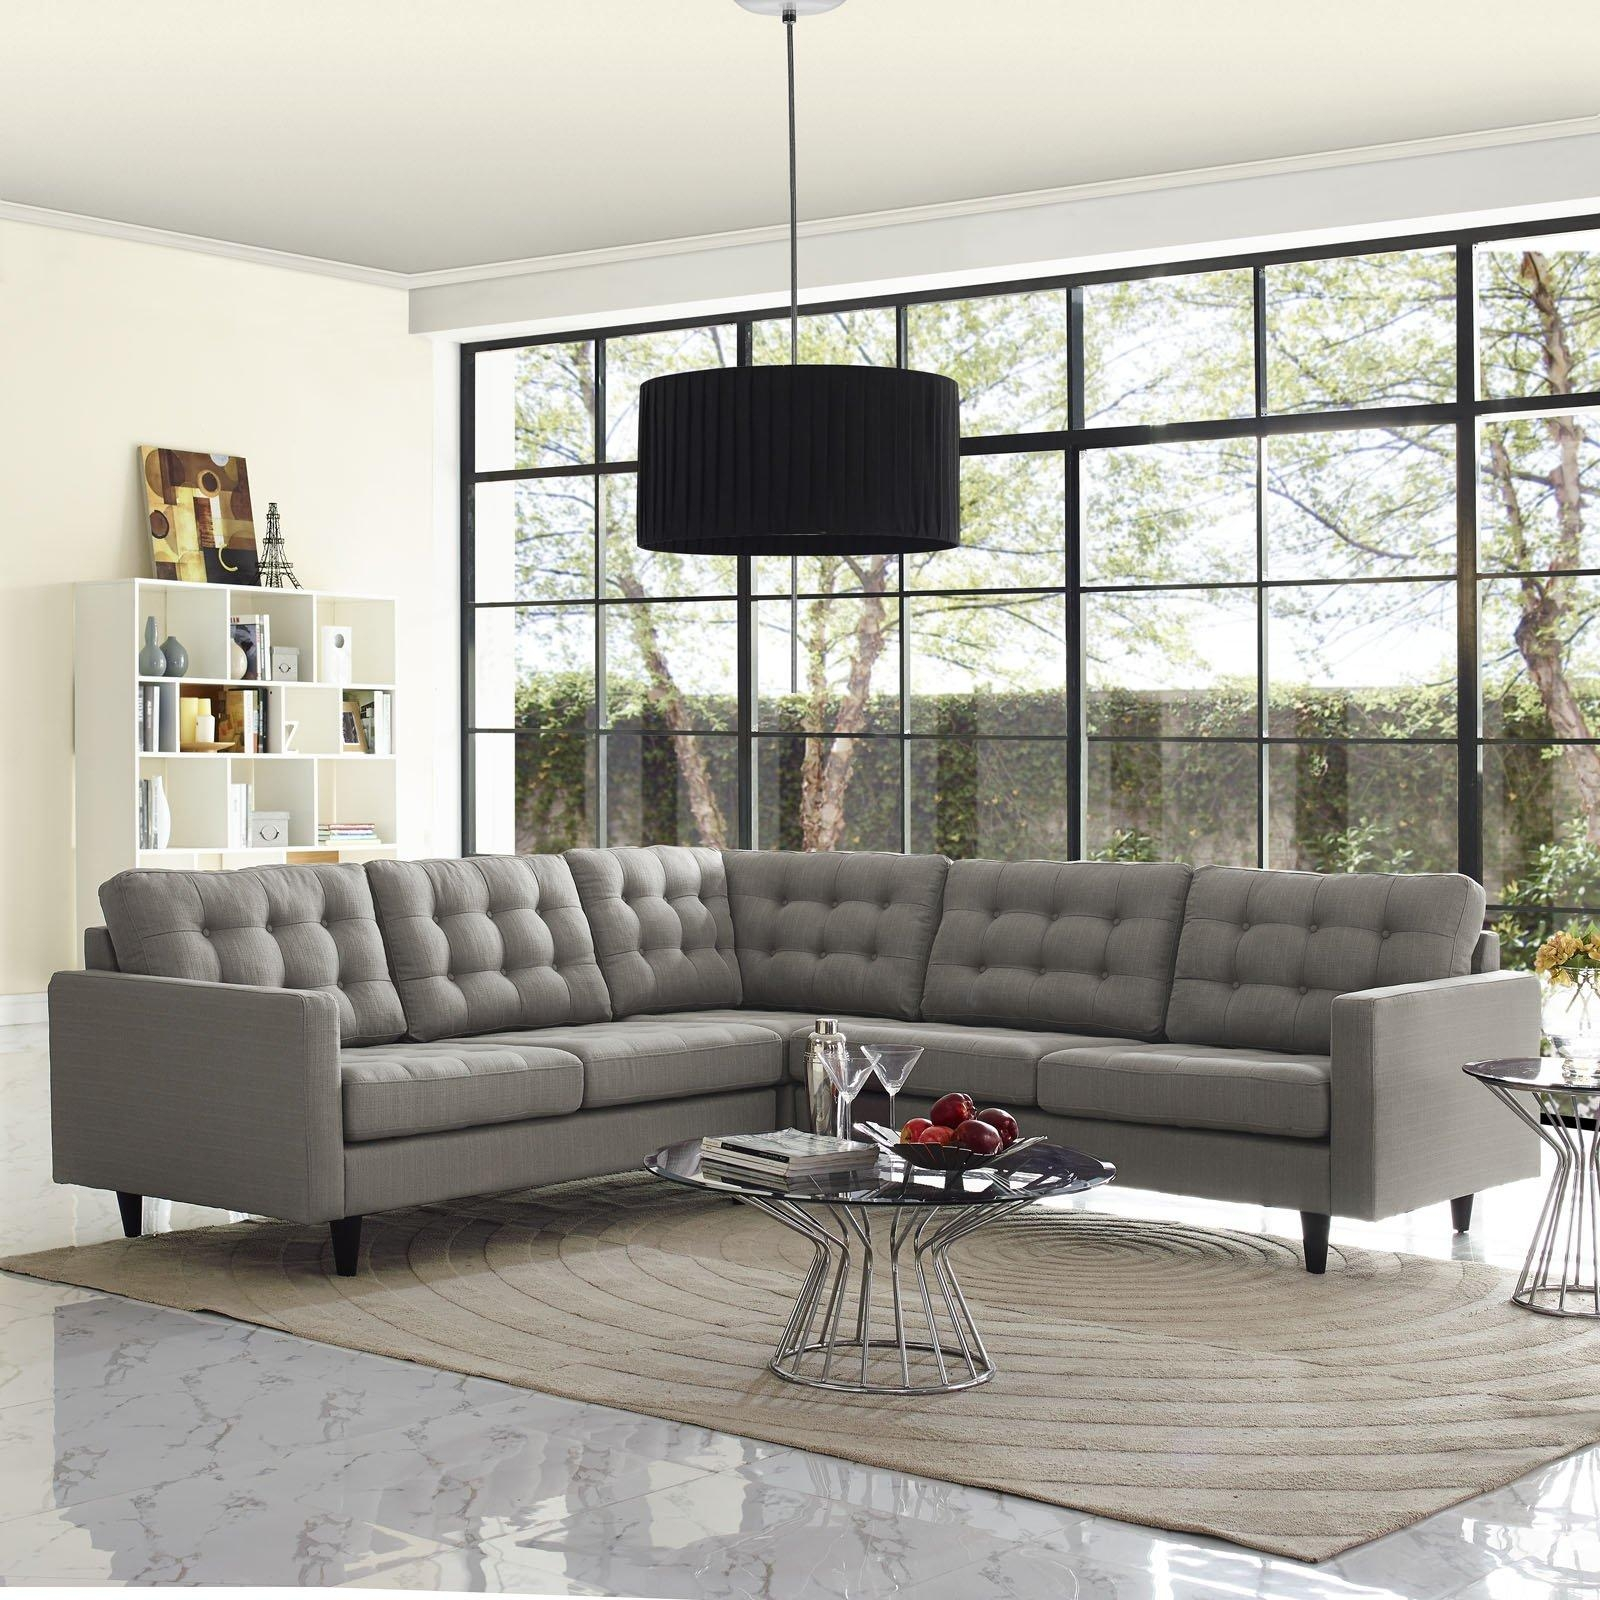 Sofas Center : Tufted Sectional Sofa With Chaise Leather Sofas Set With Regard To Tufted Sectional Sofa Chaise (Image 18 of 20)